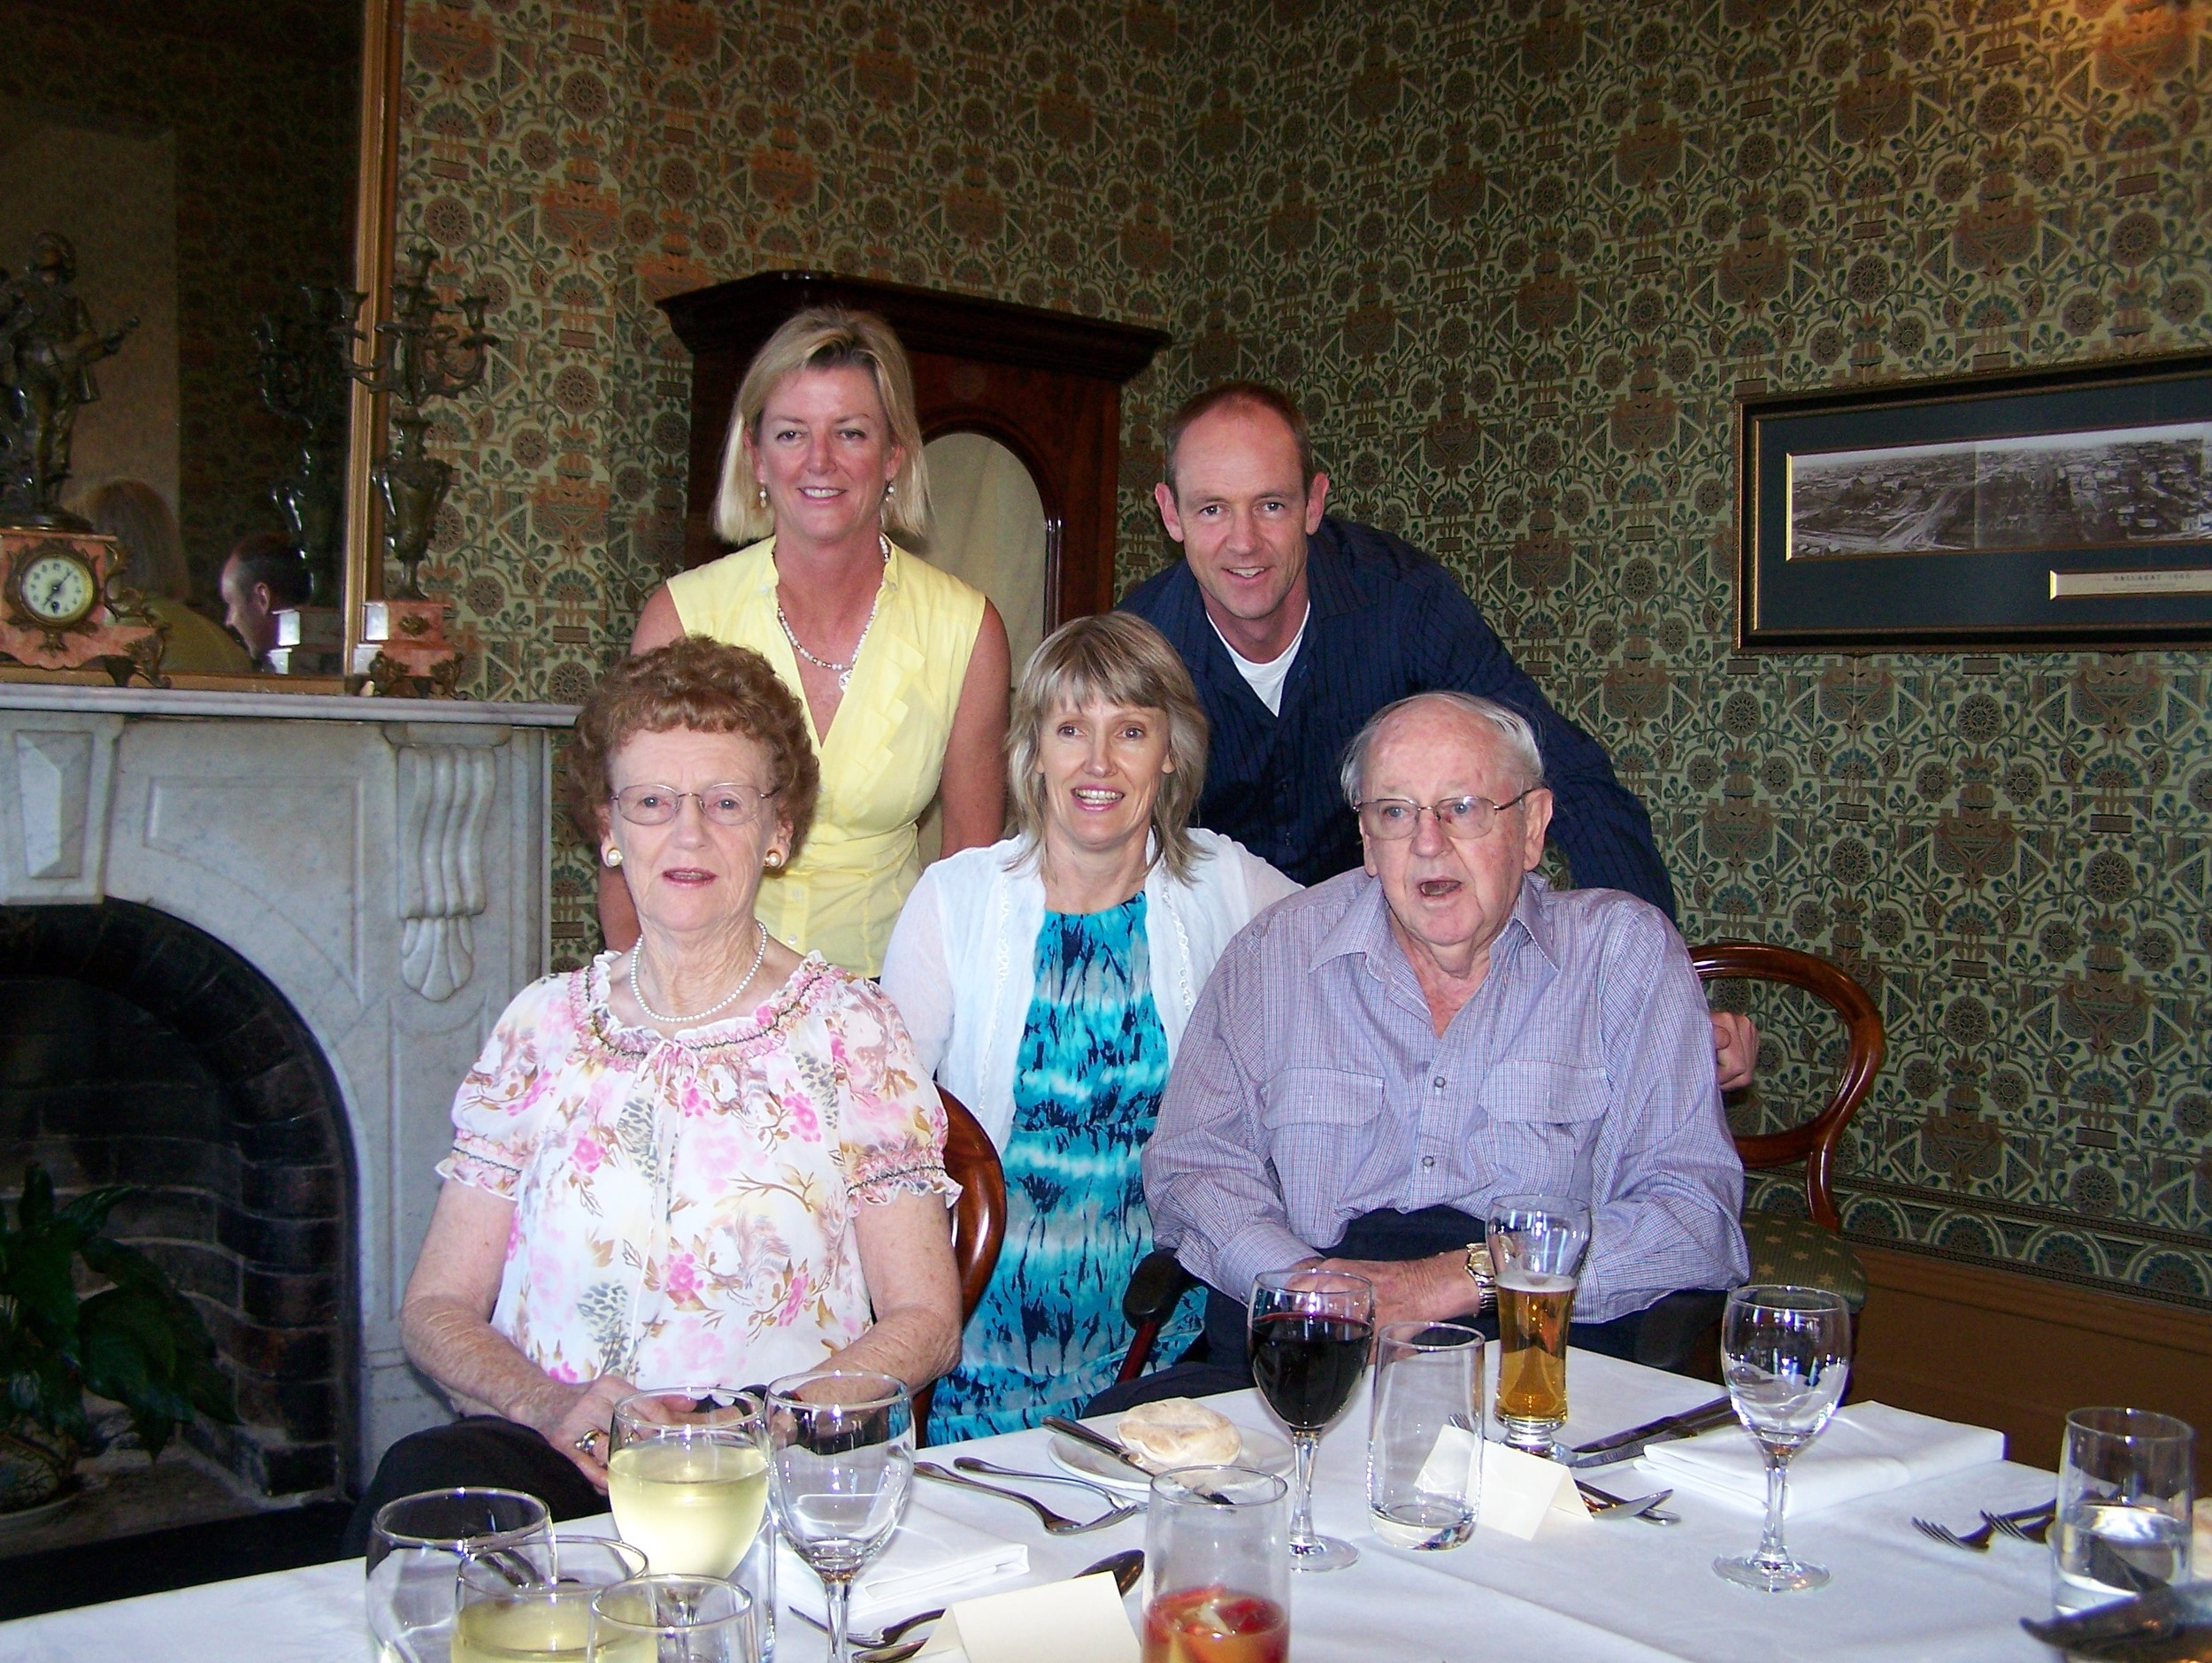 Ian MacInnes, pictured with wife Margaret and three adult children